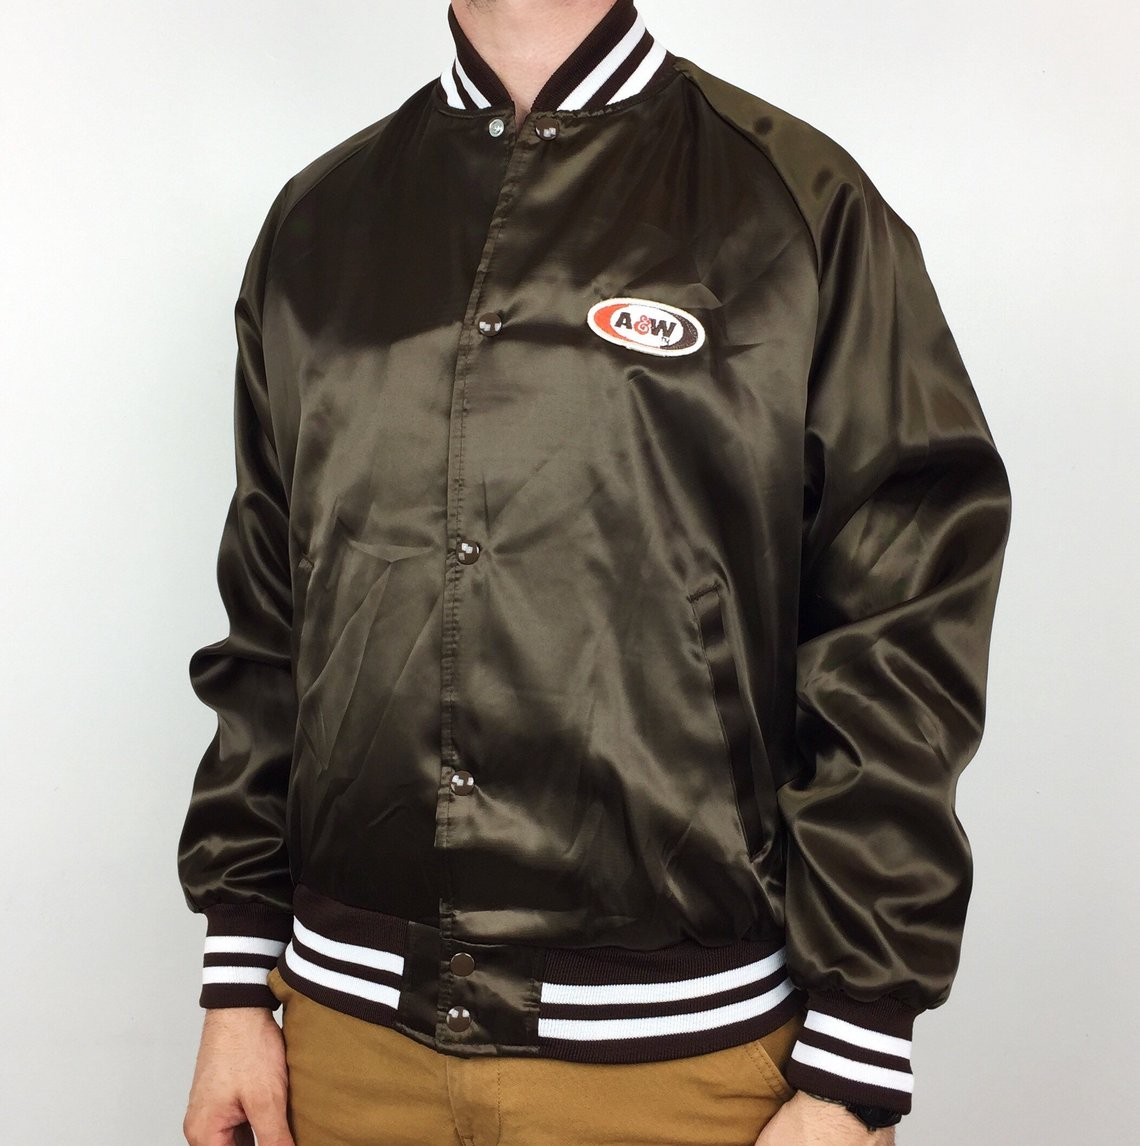 Vintage black nylon bomber jacket with A&W Restaurants logo patch